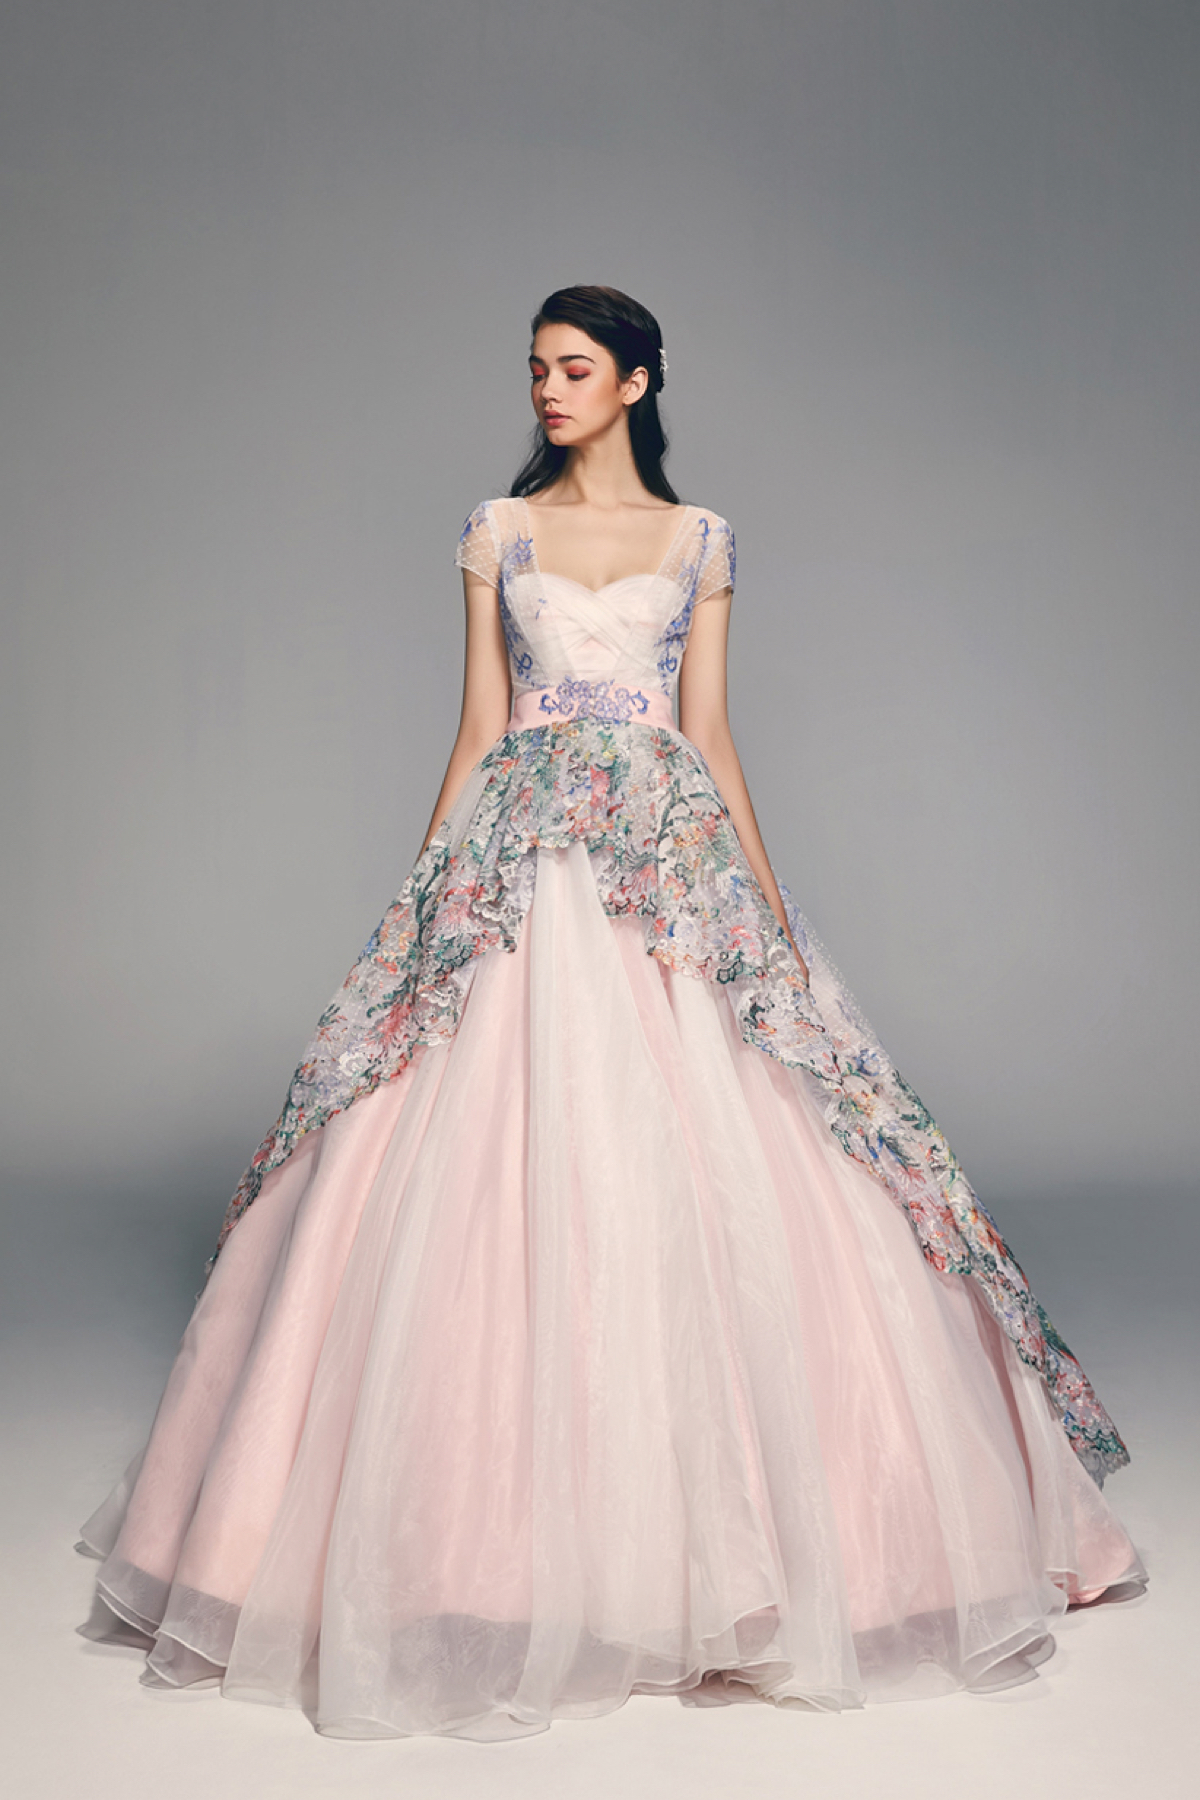 17 inspiring and trending wedding gowns for spring summer 2018 Wedding dress themes 2018